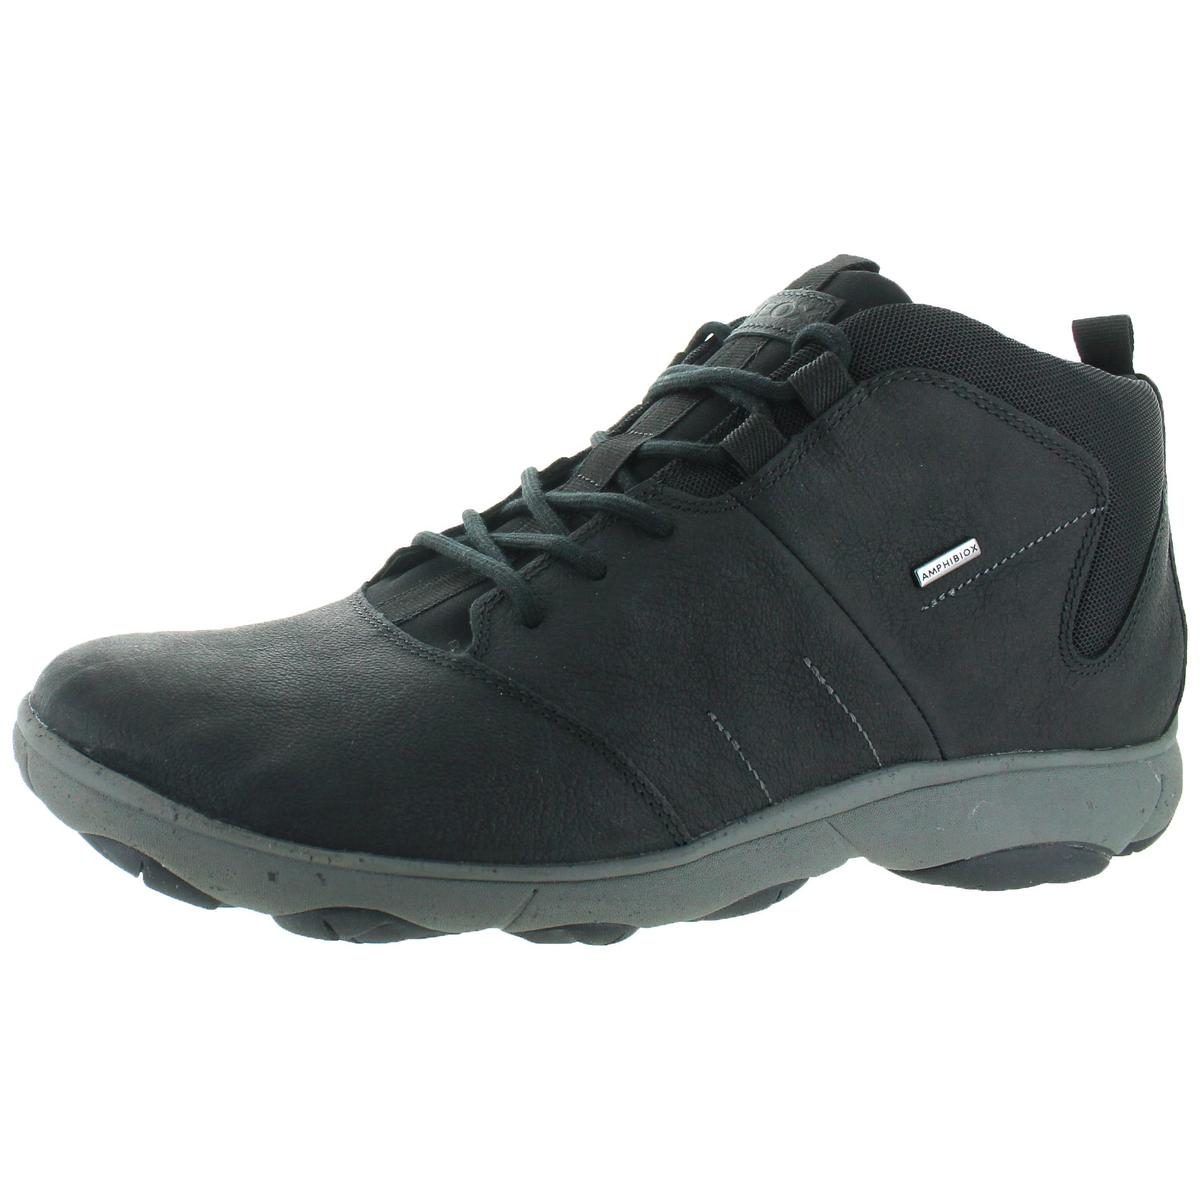 2e6adc5e2b Details about Geox Nebula ABX Men's Leather Waterproof Ankle Boots Black  Size 12